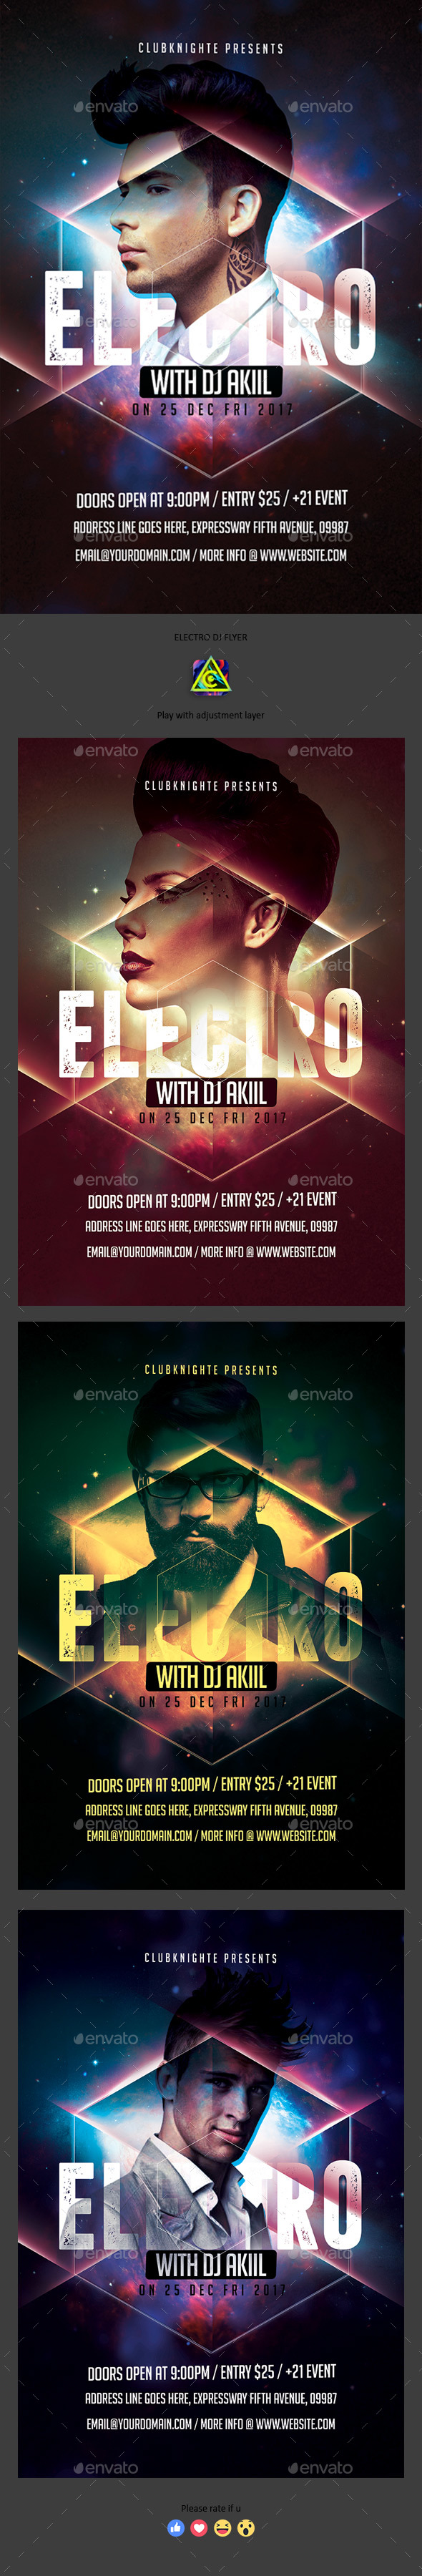 Electro Dj Flyer - Clubs & Parties Events